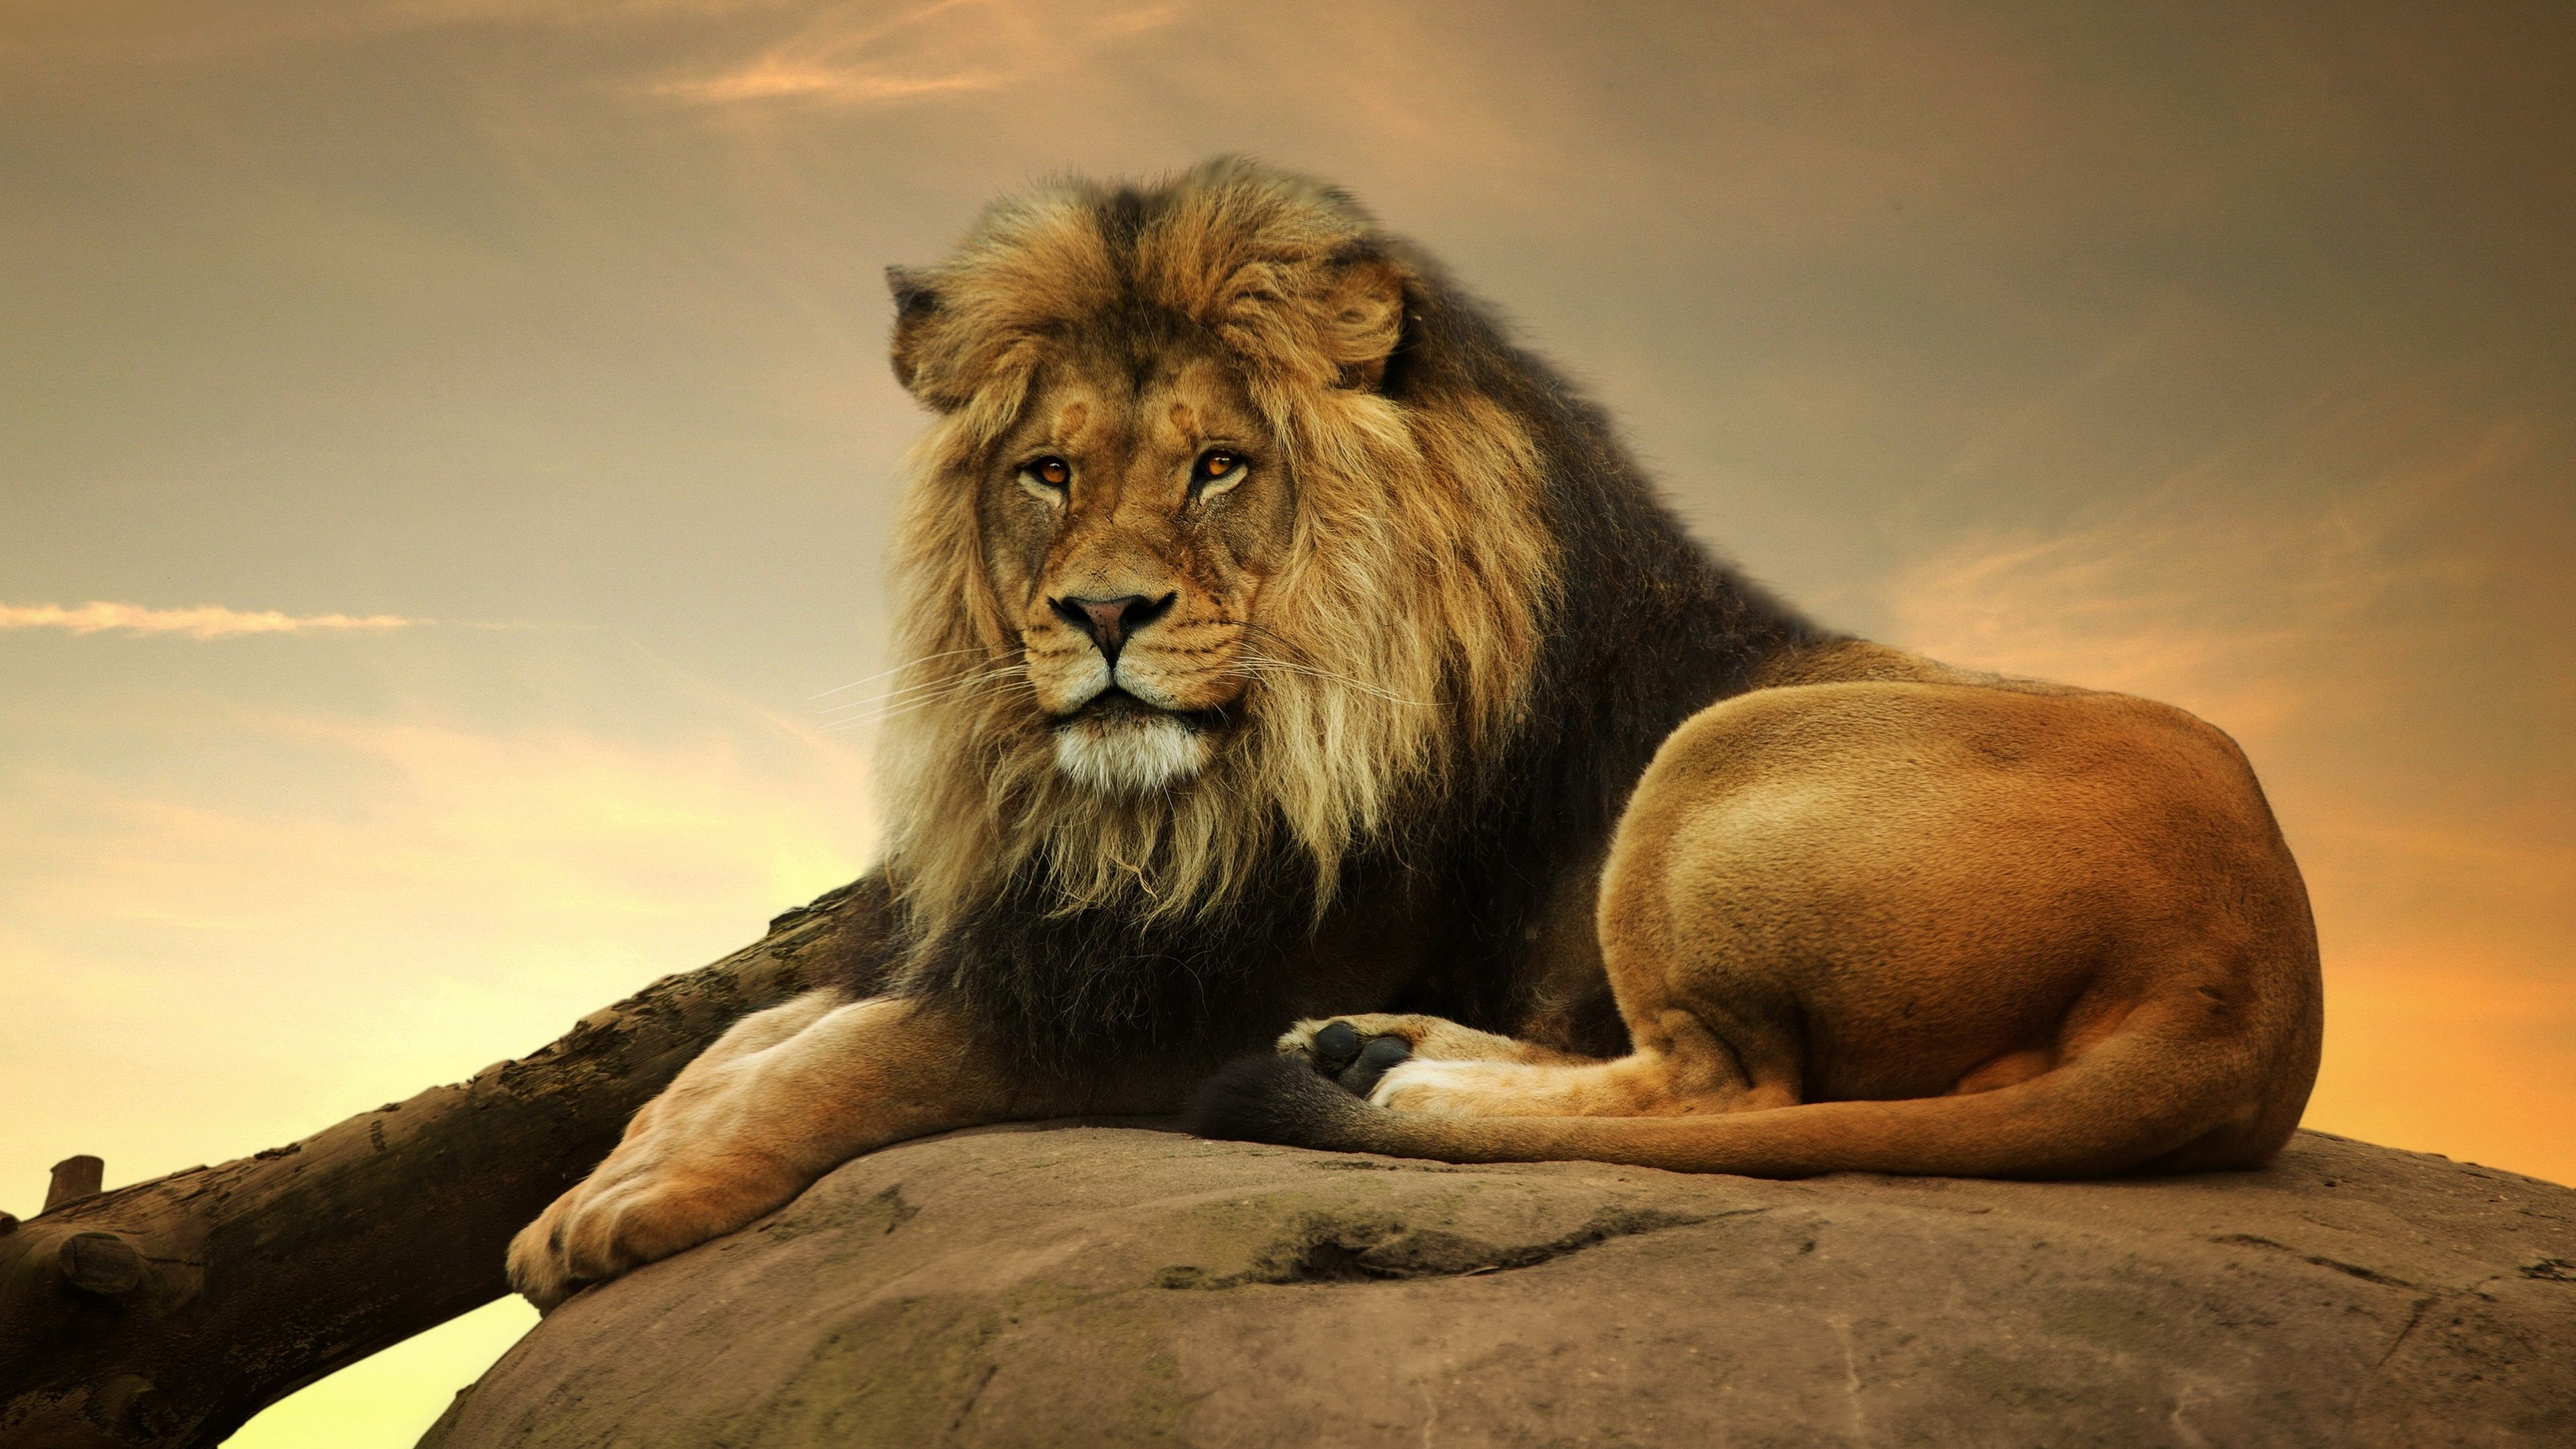 Trends For 1080p 4k Ultra Hd Lion Wallpaper Hd Photos In 2020 Lion Painting Lion Pictures Male Lion